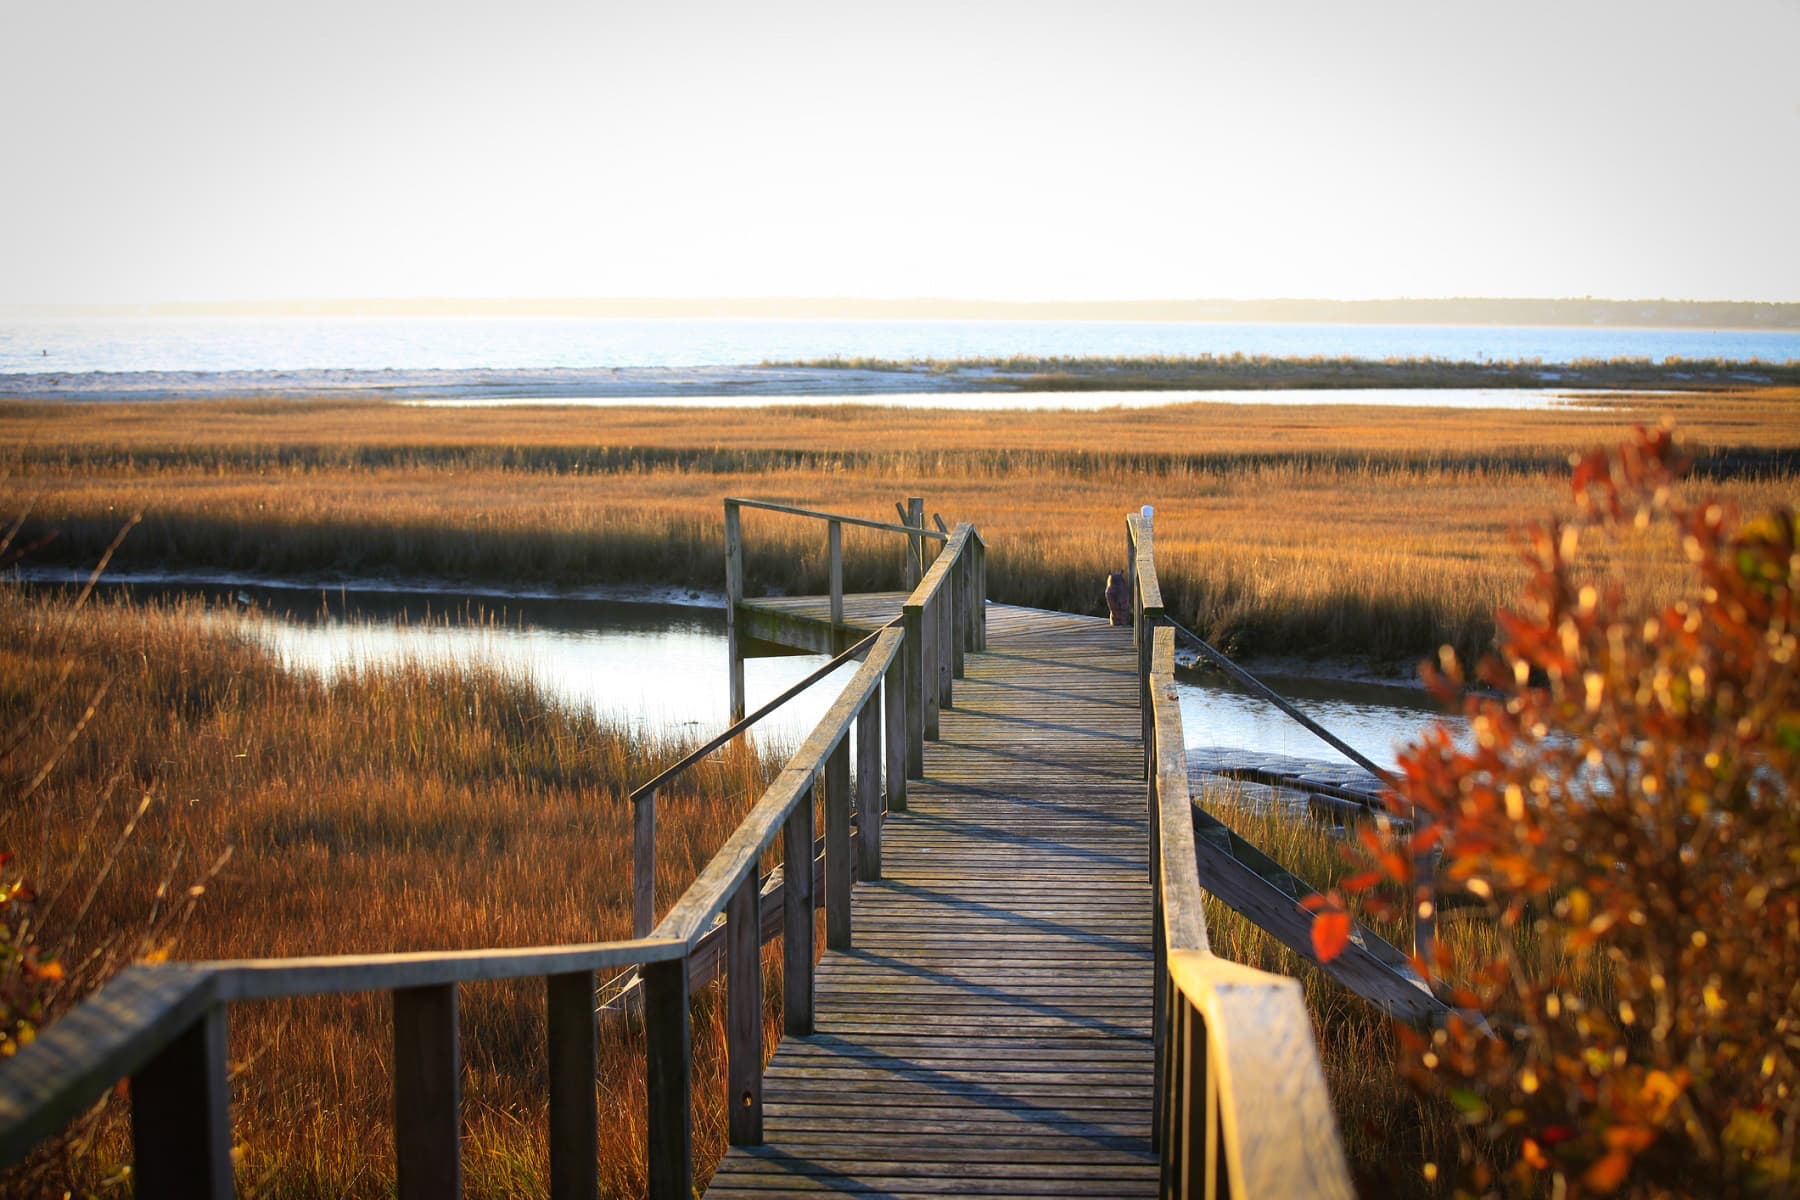 Dock stretches into Cape Cod salt marsh. In winter the grasses turn orange and brown.